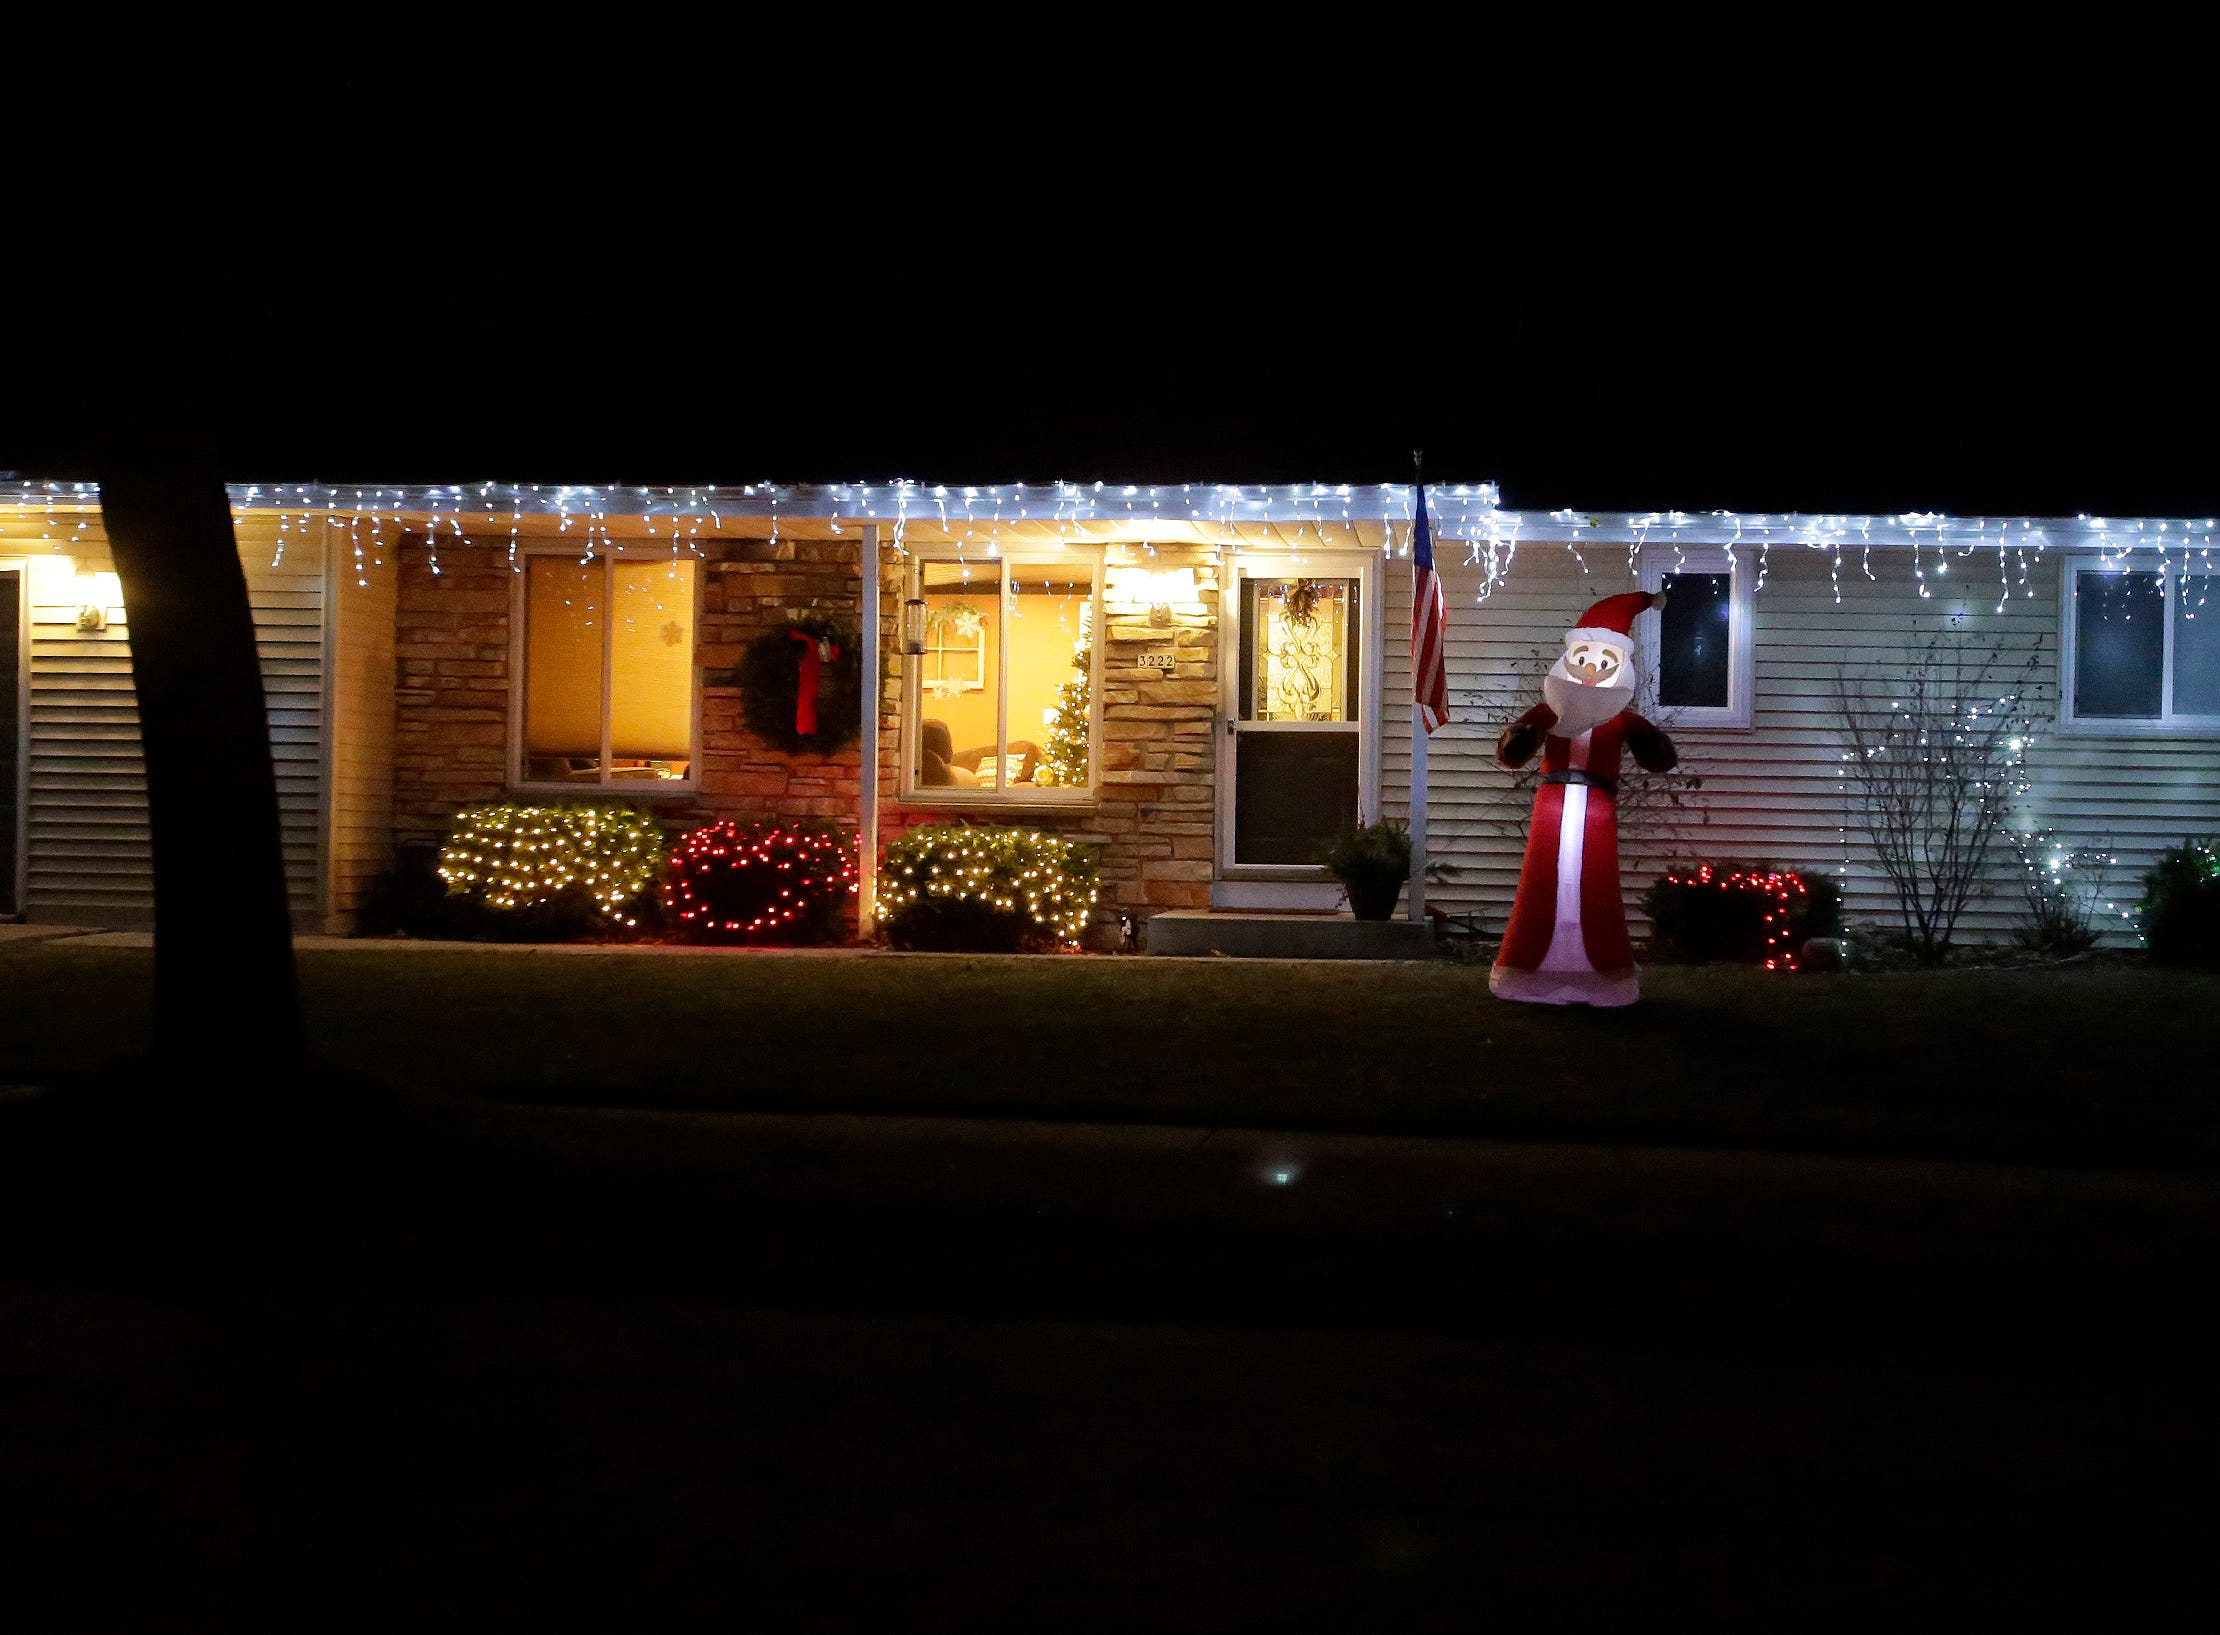 Santa welcomes visitors to this North 21st Street home, Wednesday, December 19, 2018, in Sheboygan, Wis.